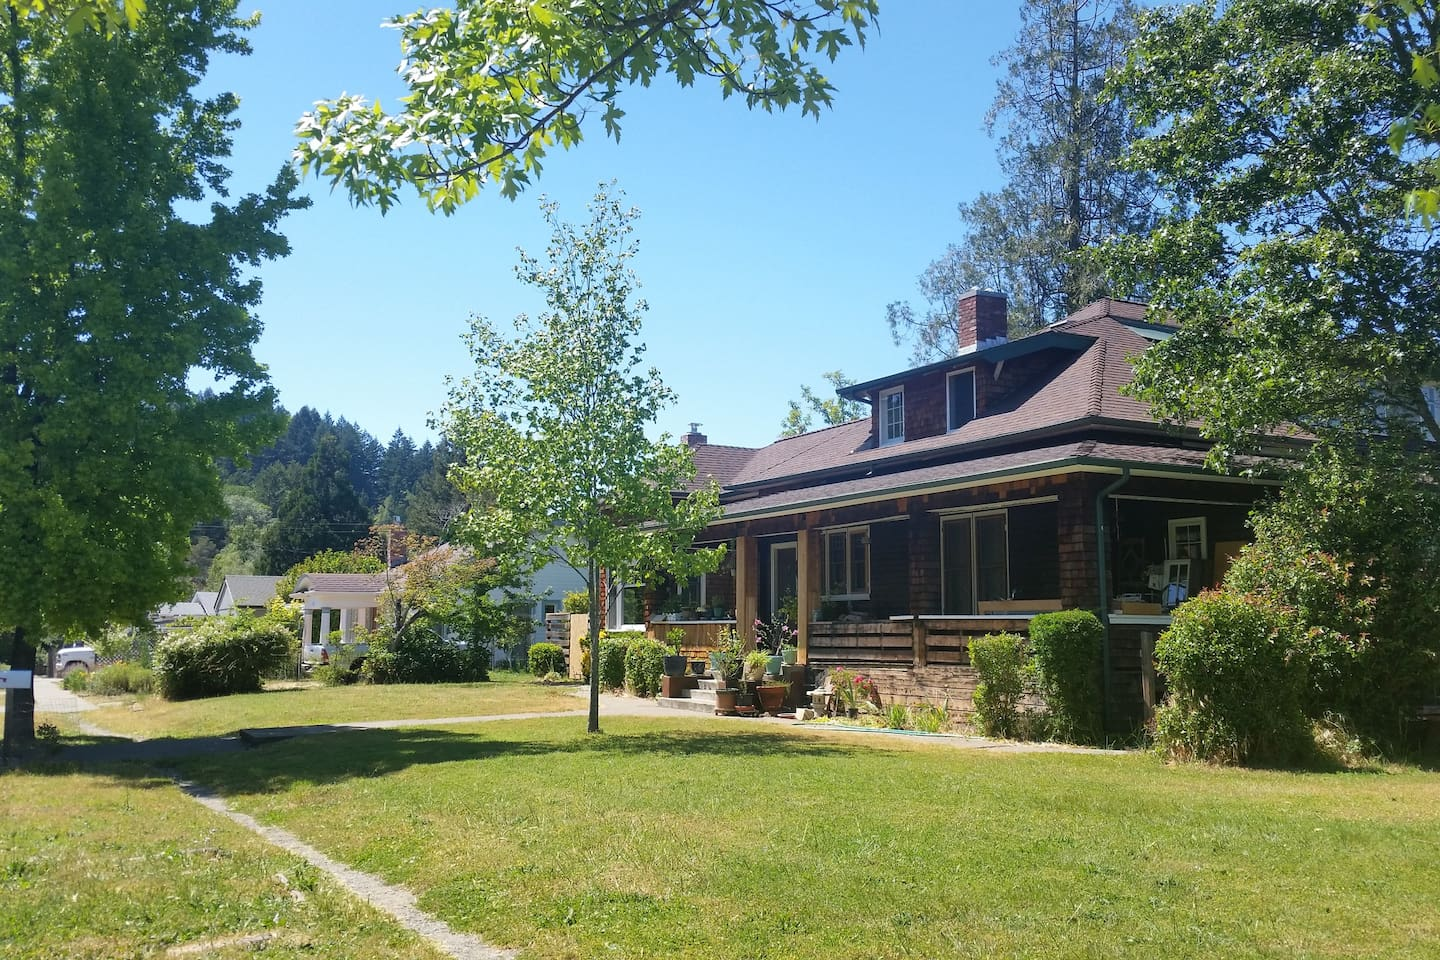 redwood manor houses for rent in willits california united states